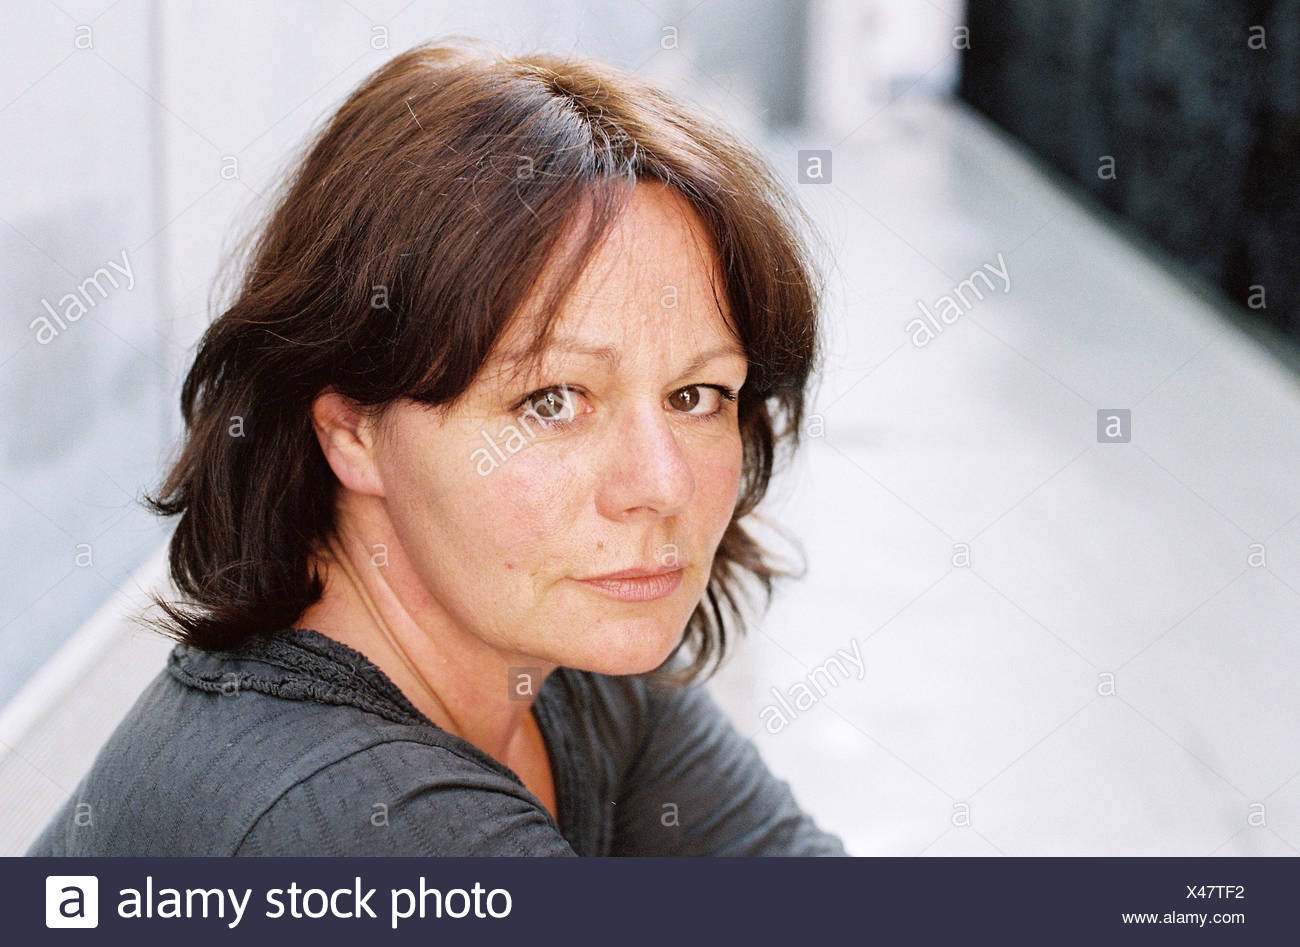 Gerster, Andrea, * 1959, Swiss author / writer, portrait, 7. International Literature Festival, Additional-Rights-Clearances-NA - Stock Image